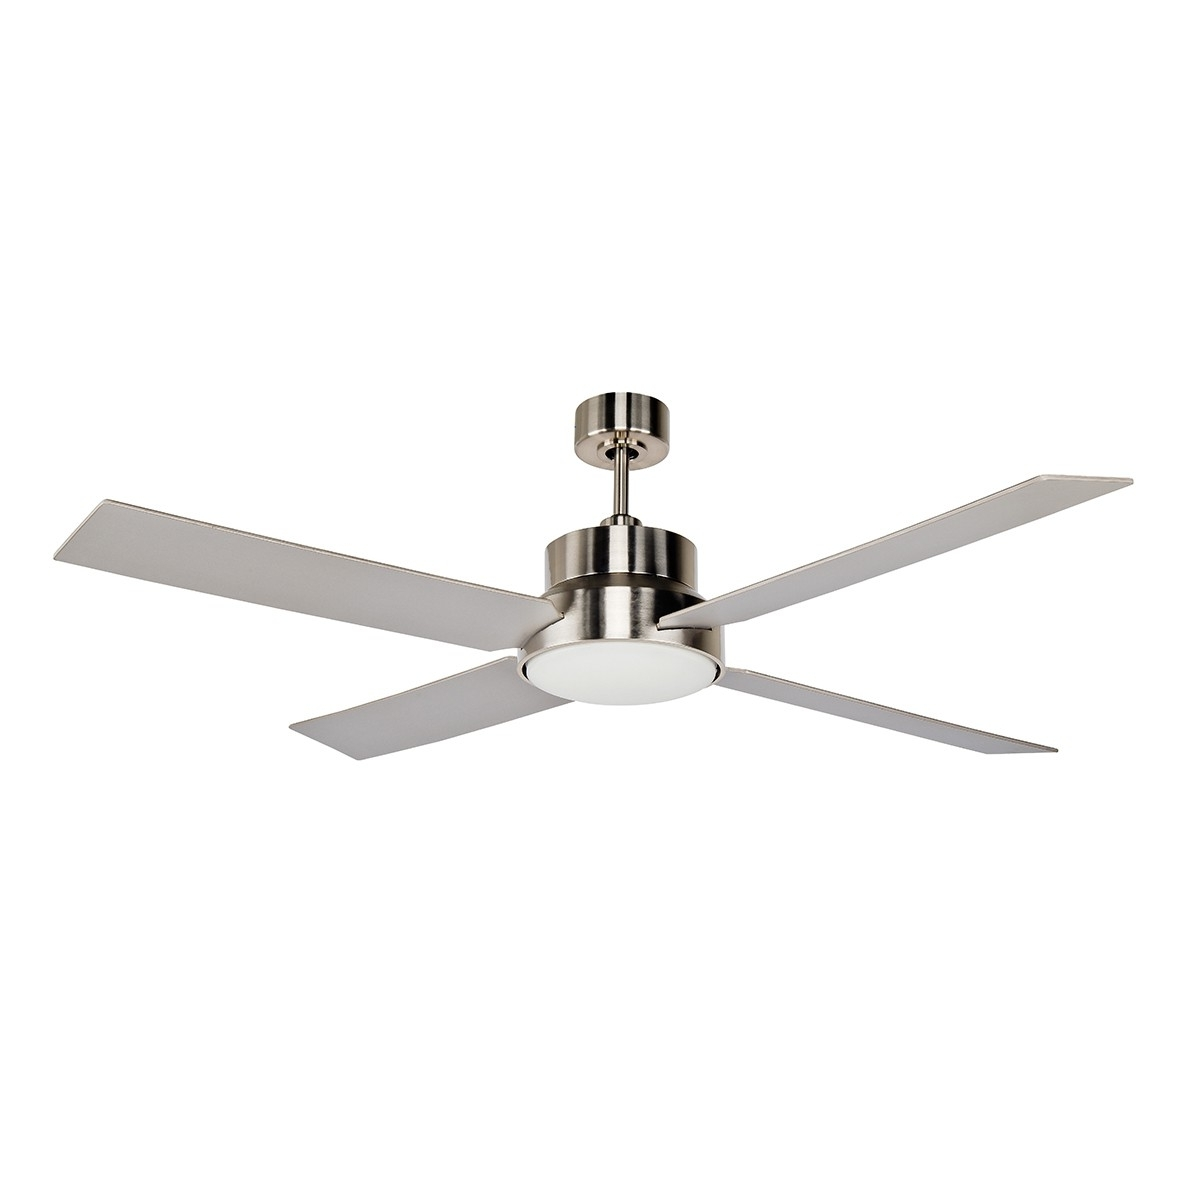 Contemporary Outdoor Ceiling Fans For Latest Dialogue Outdoor Ceiling Fan :: Stori Modern (View 3 of 20)